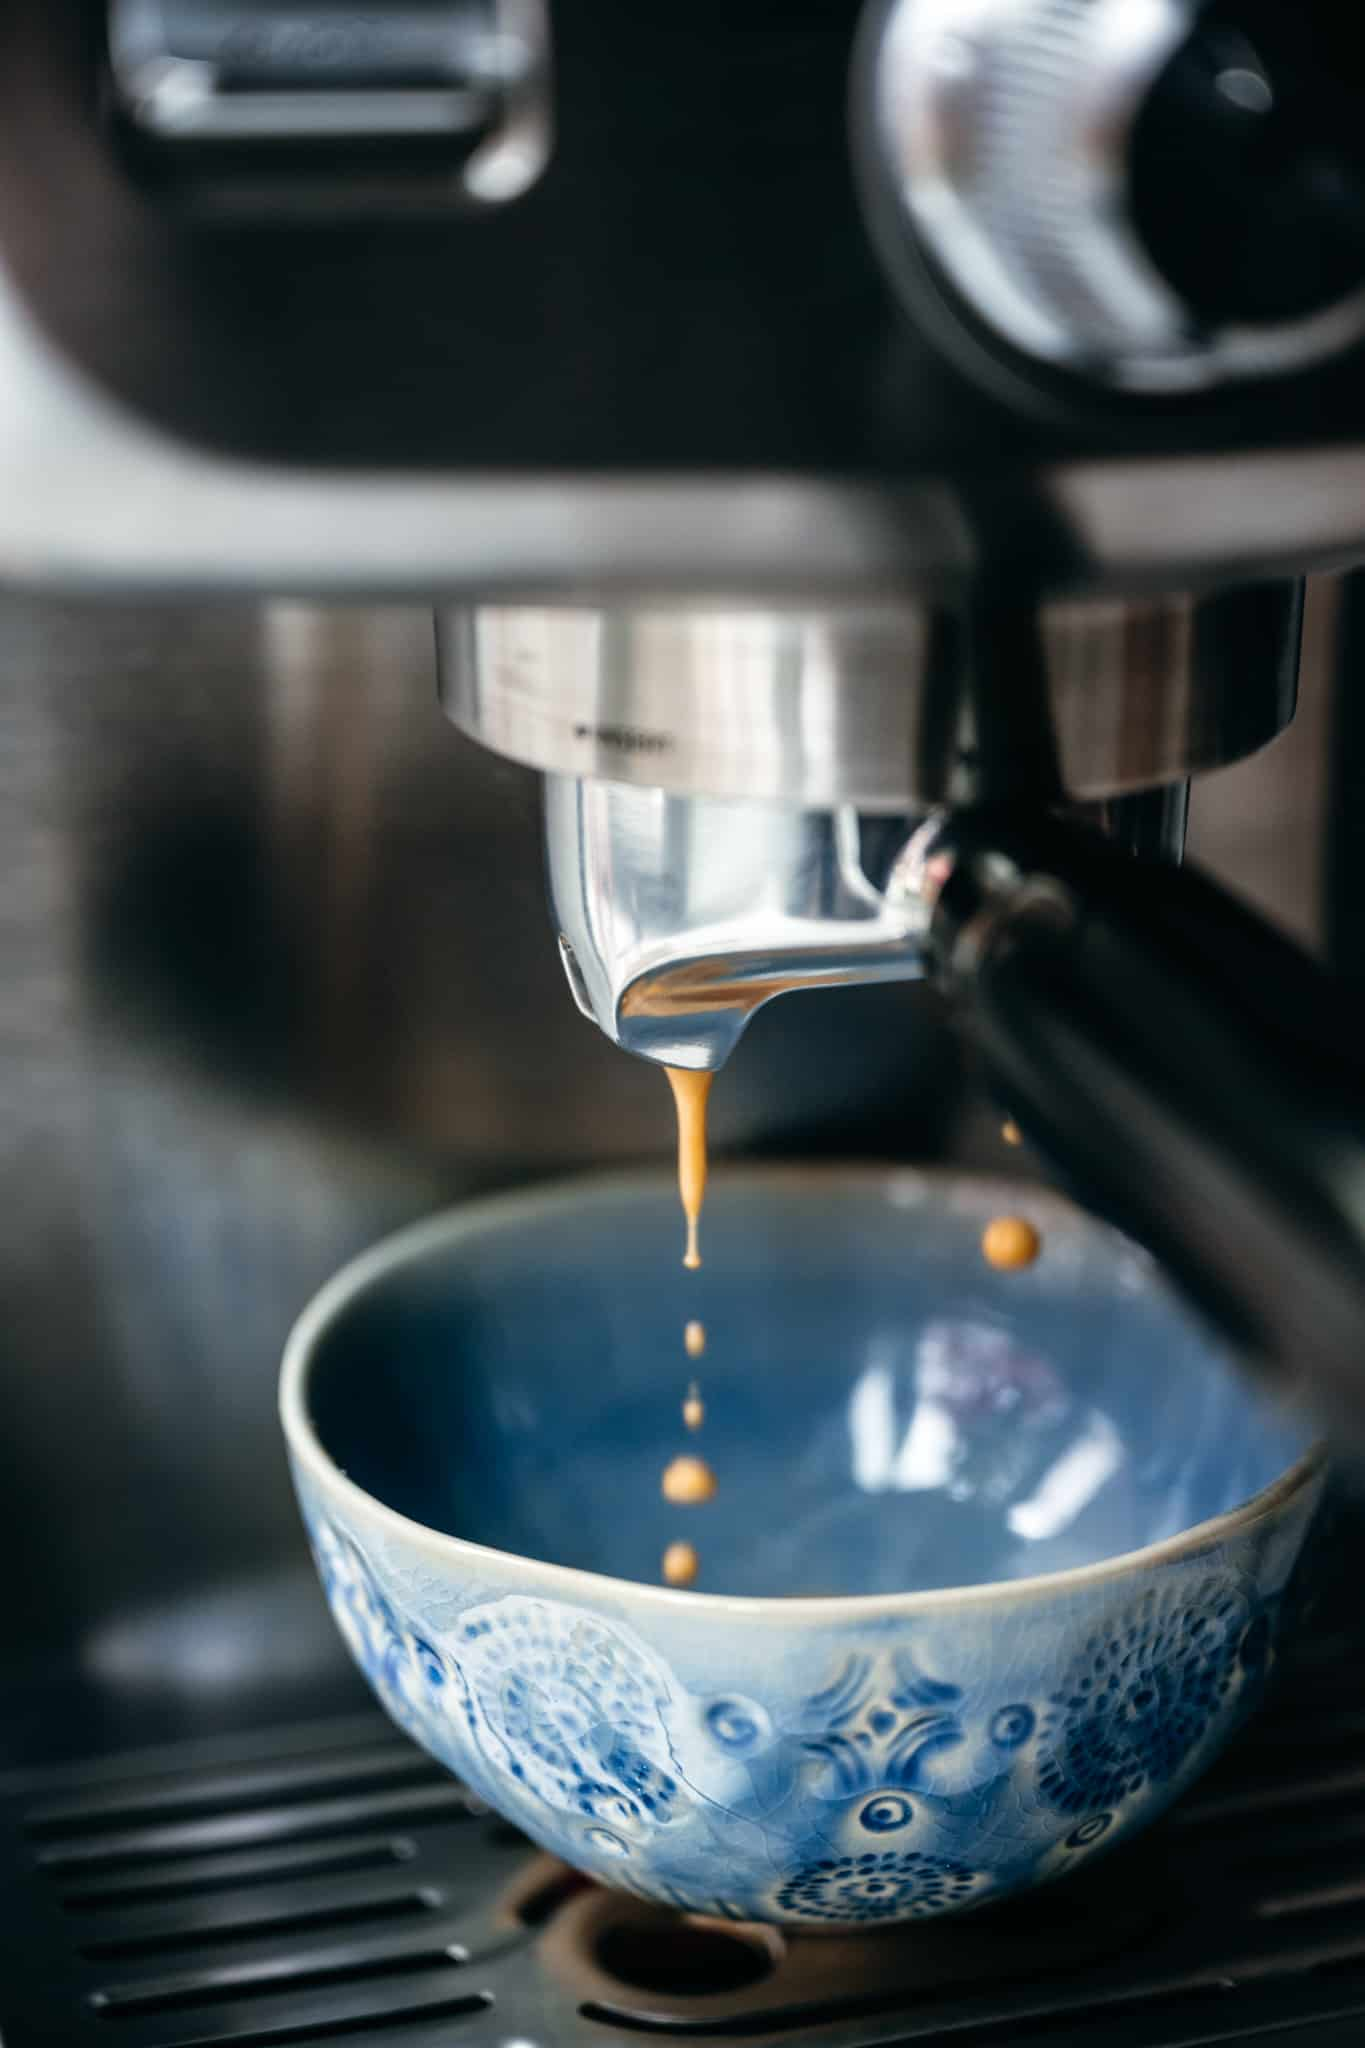 Espresso falling into blue coffee cup from machine